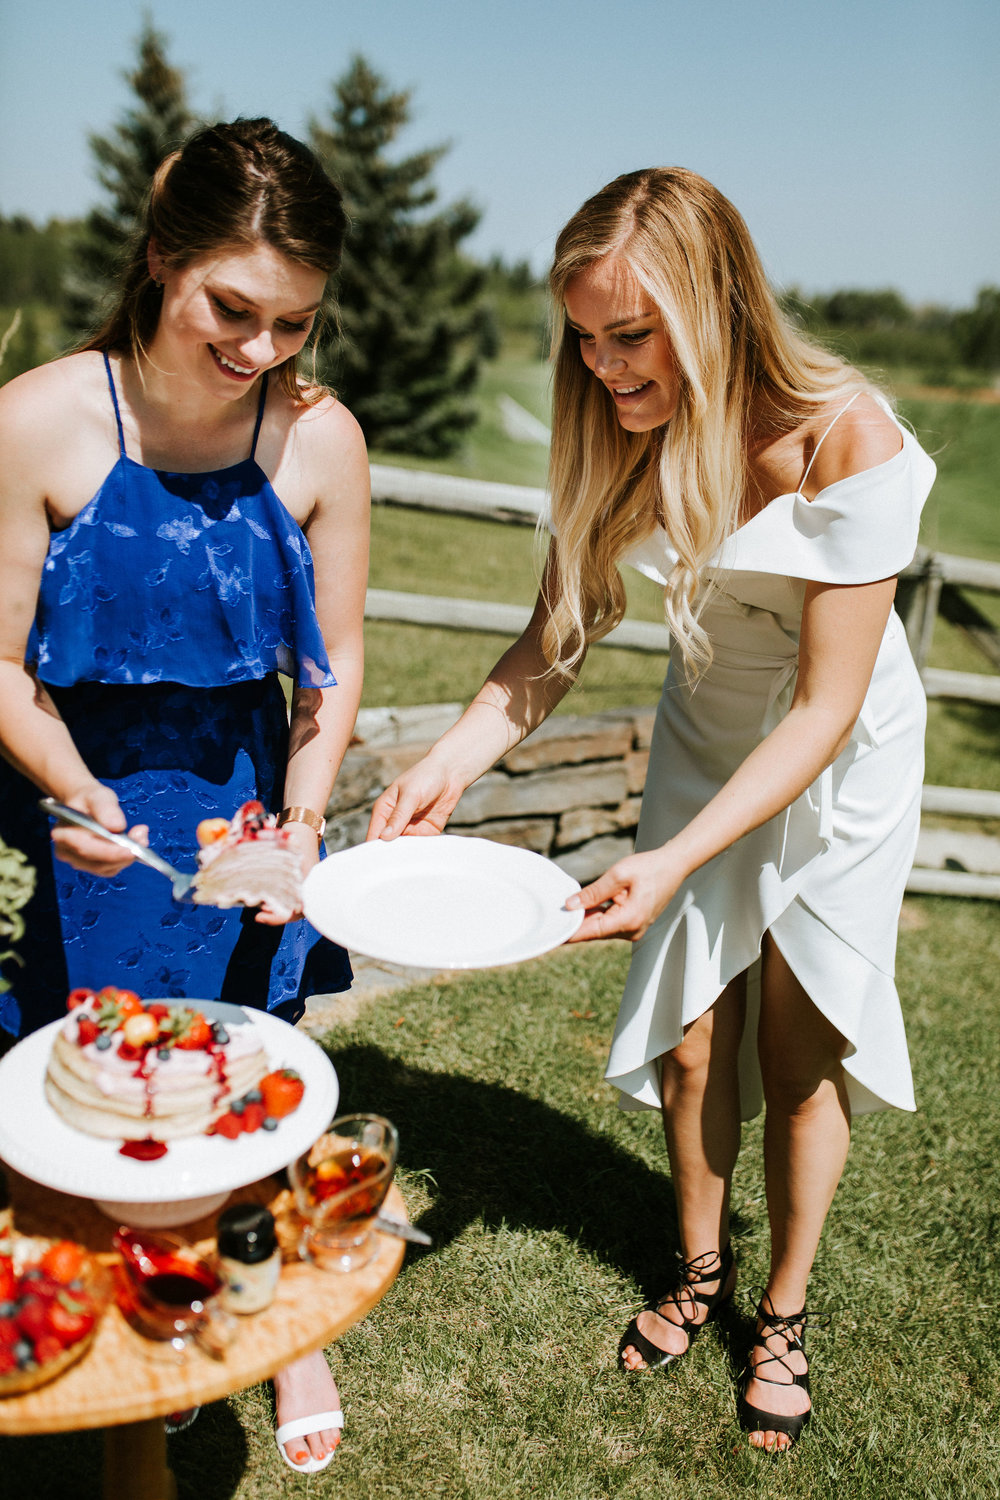 Bexley Design Co - How to make the perfect crepe cake // On the Blog